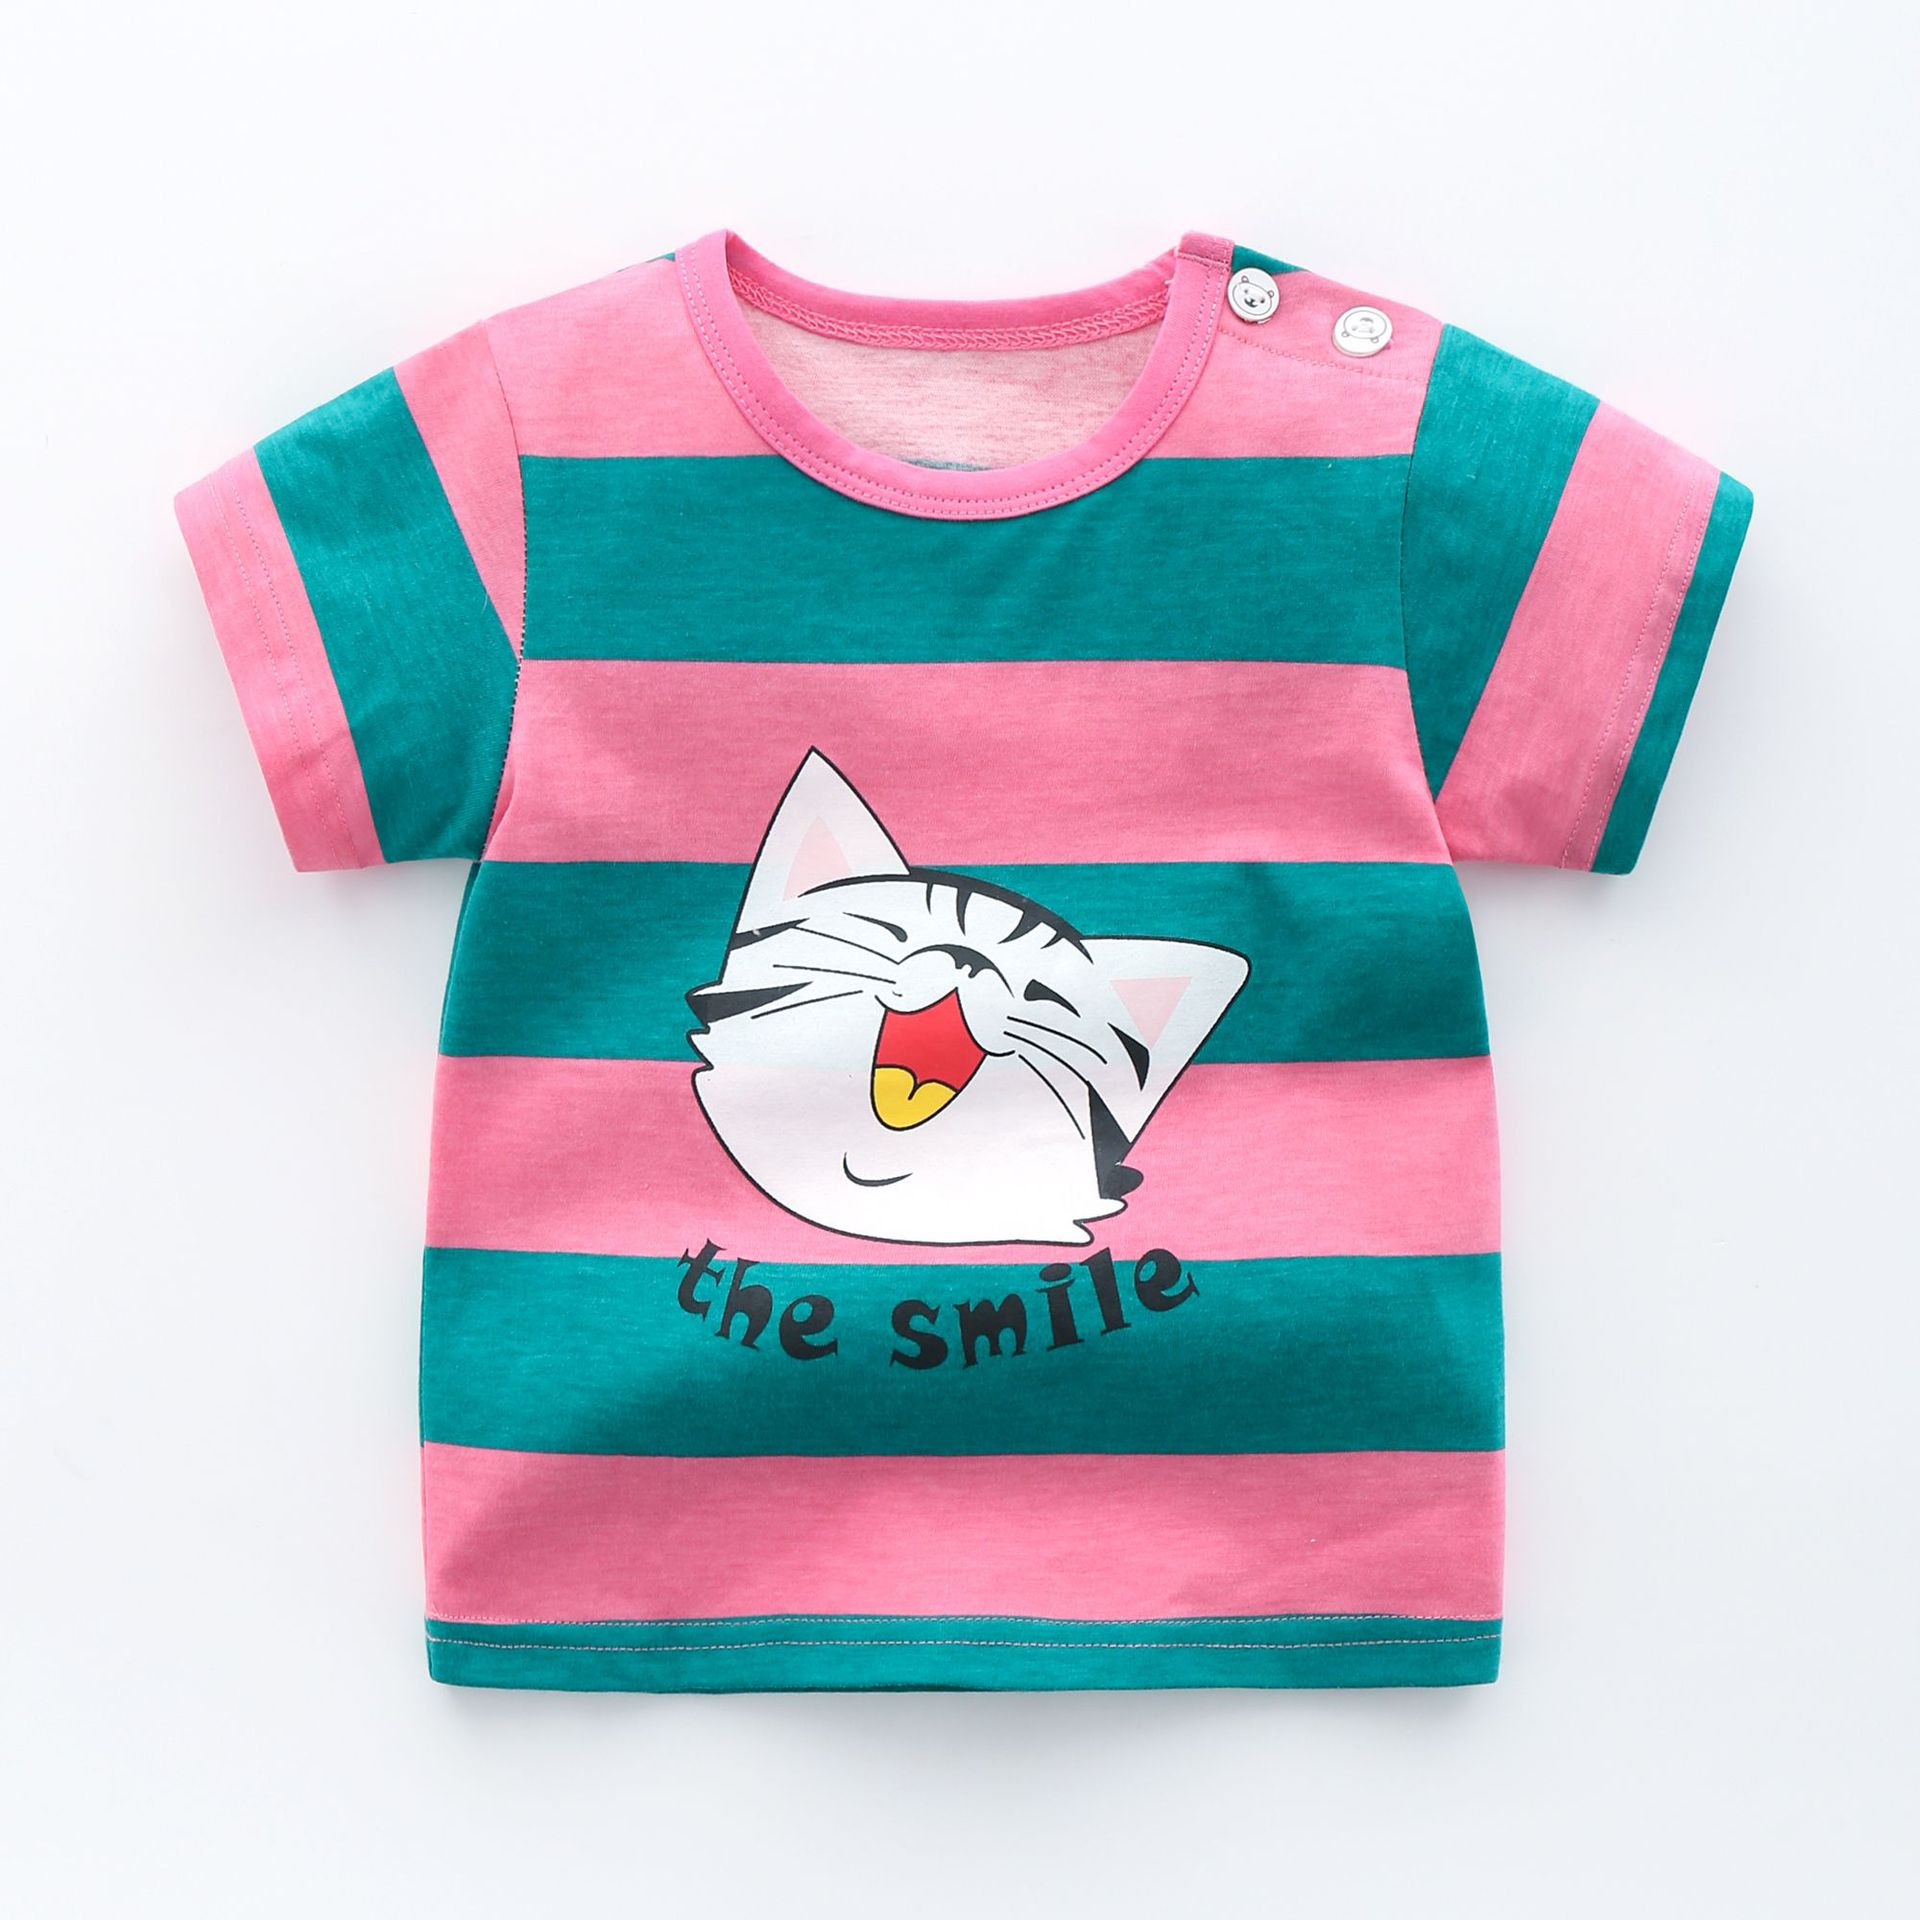 New Cartoon Baby Boys T-Shirts For Summer Infant Kids Short Sleeve Tees Baby Boy Girl  Clothes Cotton Toddler Tops